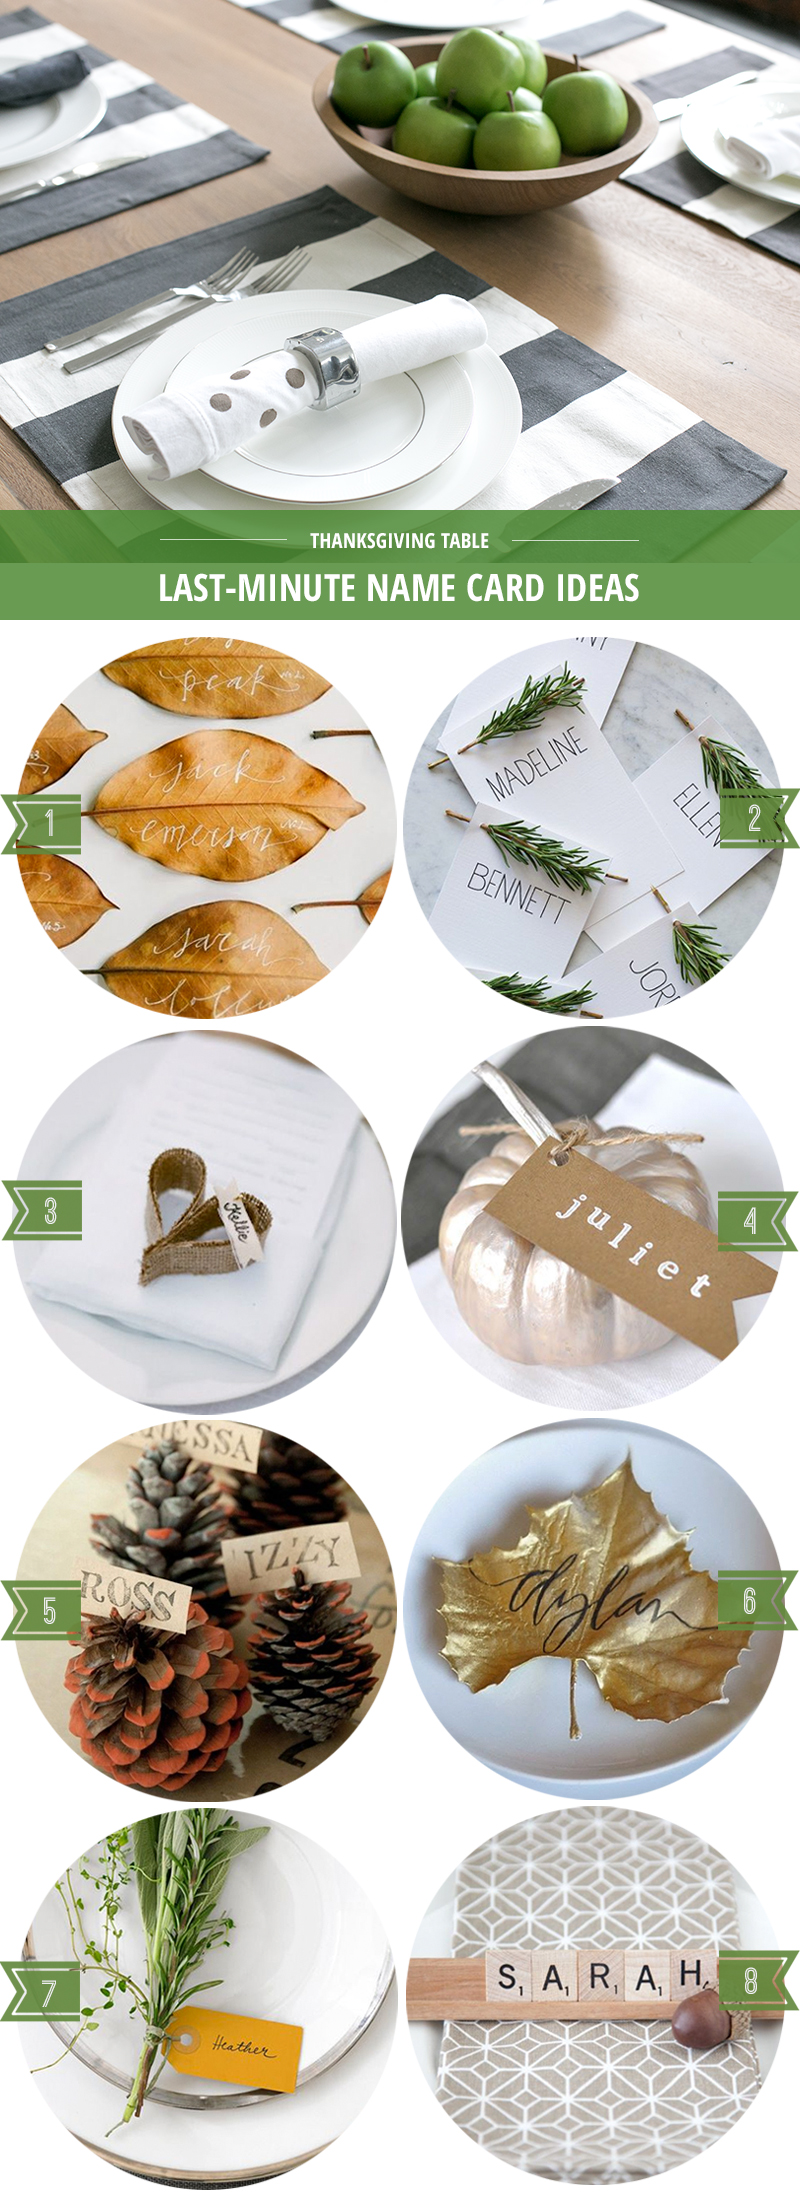 Simple last-minute place card ideas for your Thanksgiving table.